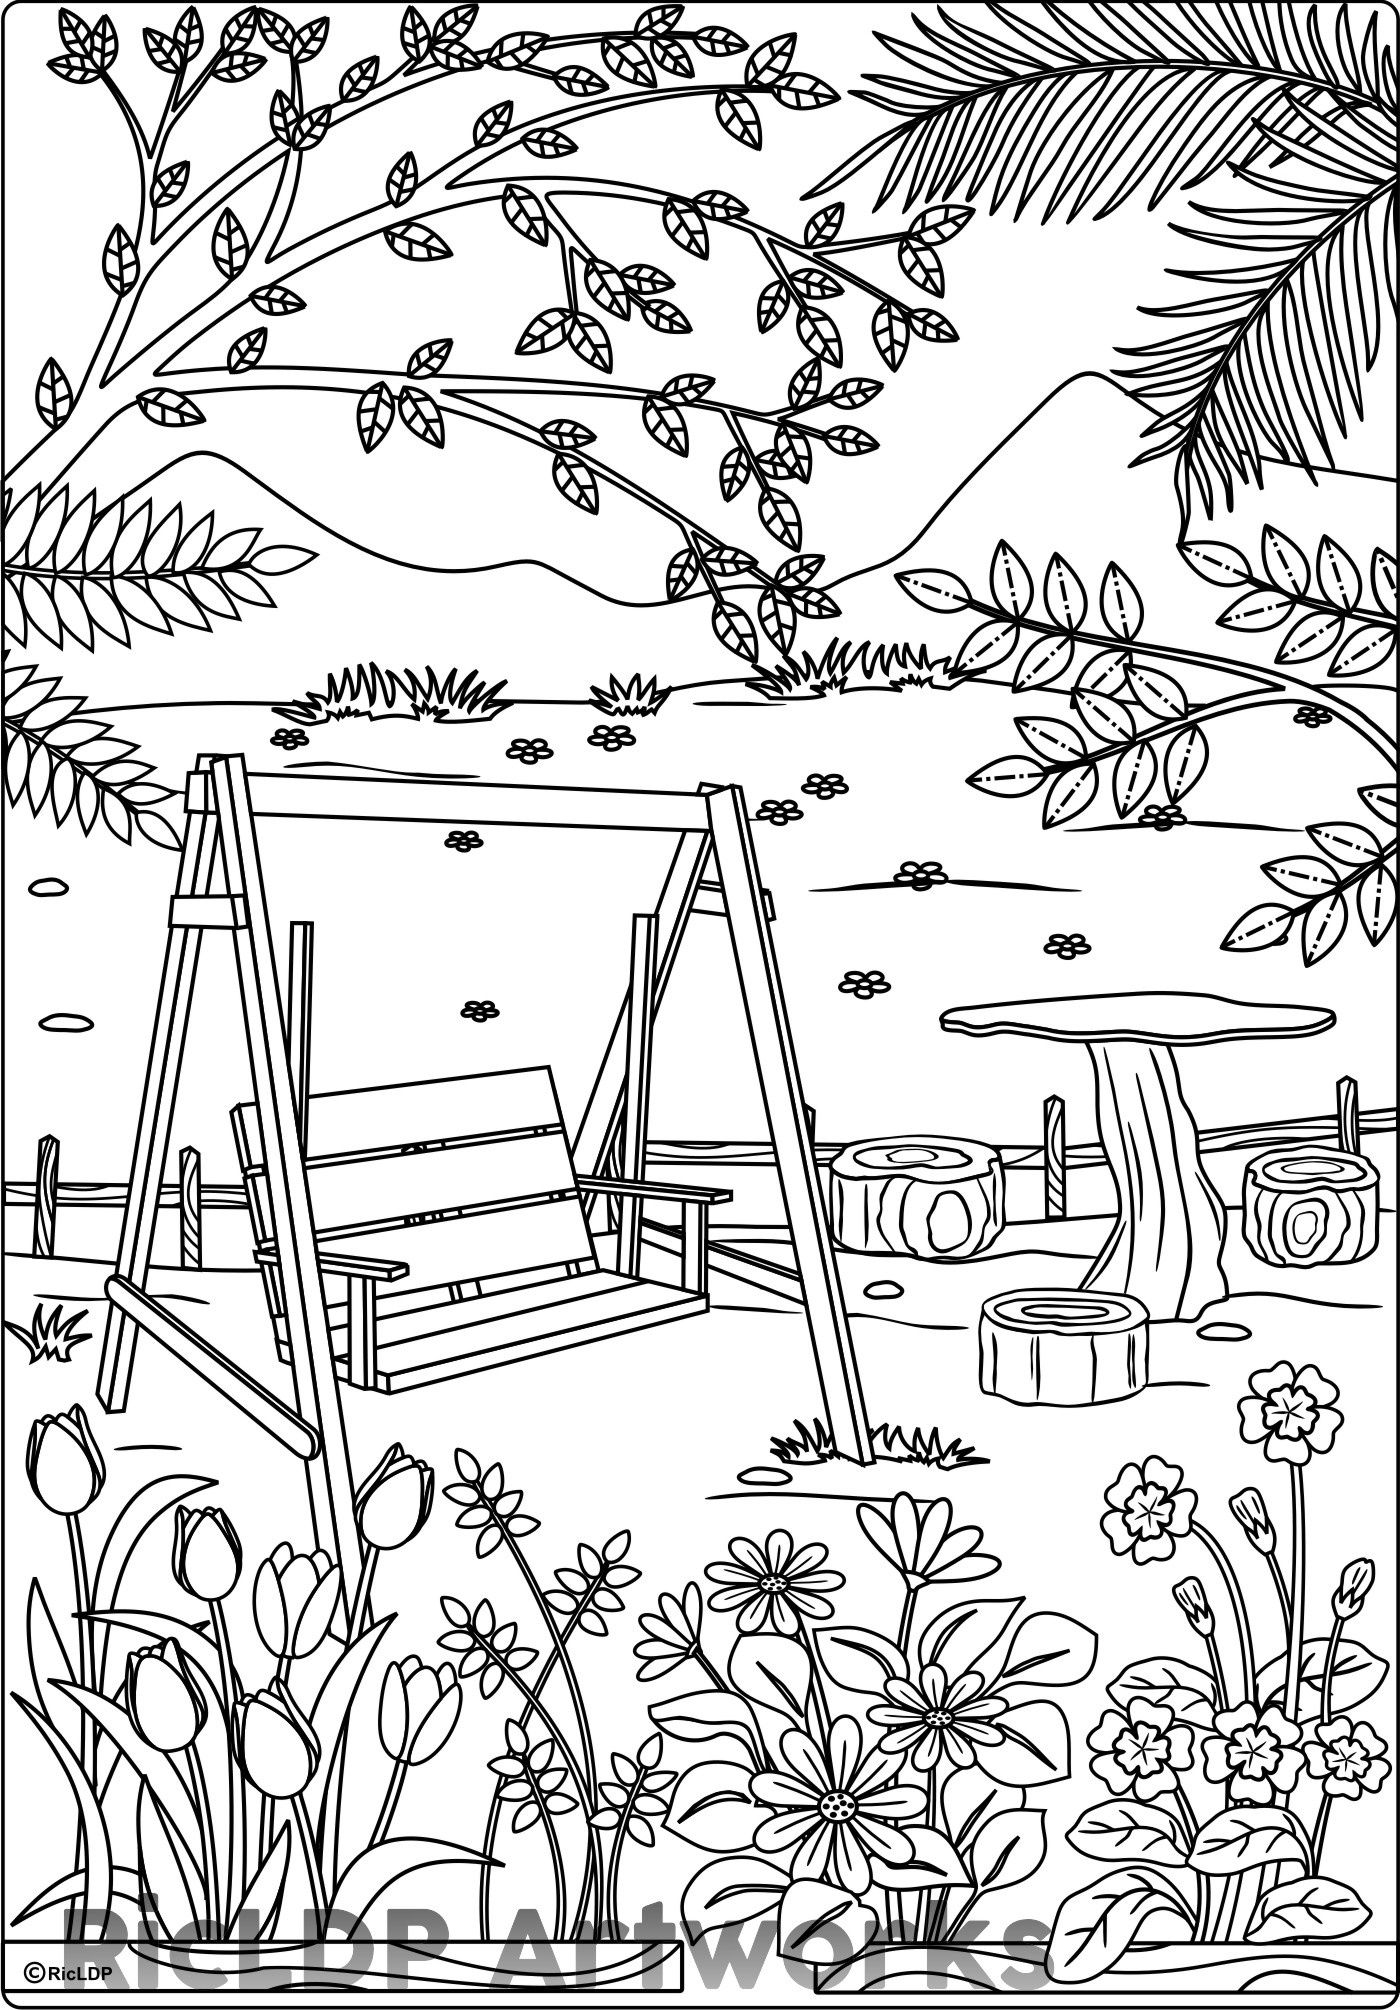 Ricldp Artworks Ricldp Free Adult Coloring Pages Adult